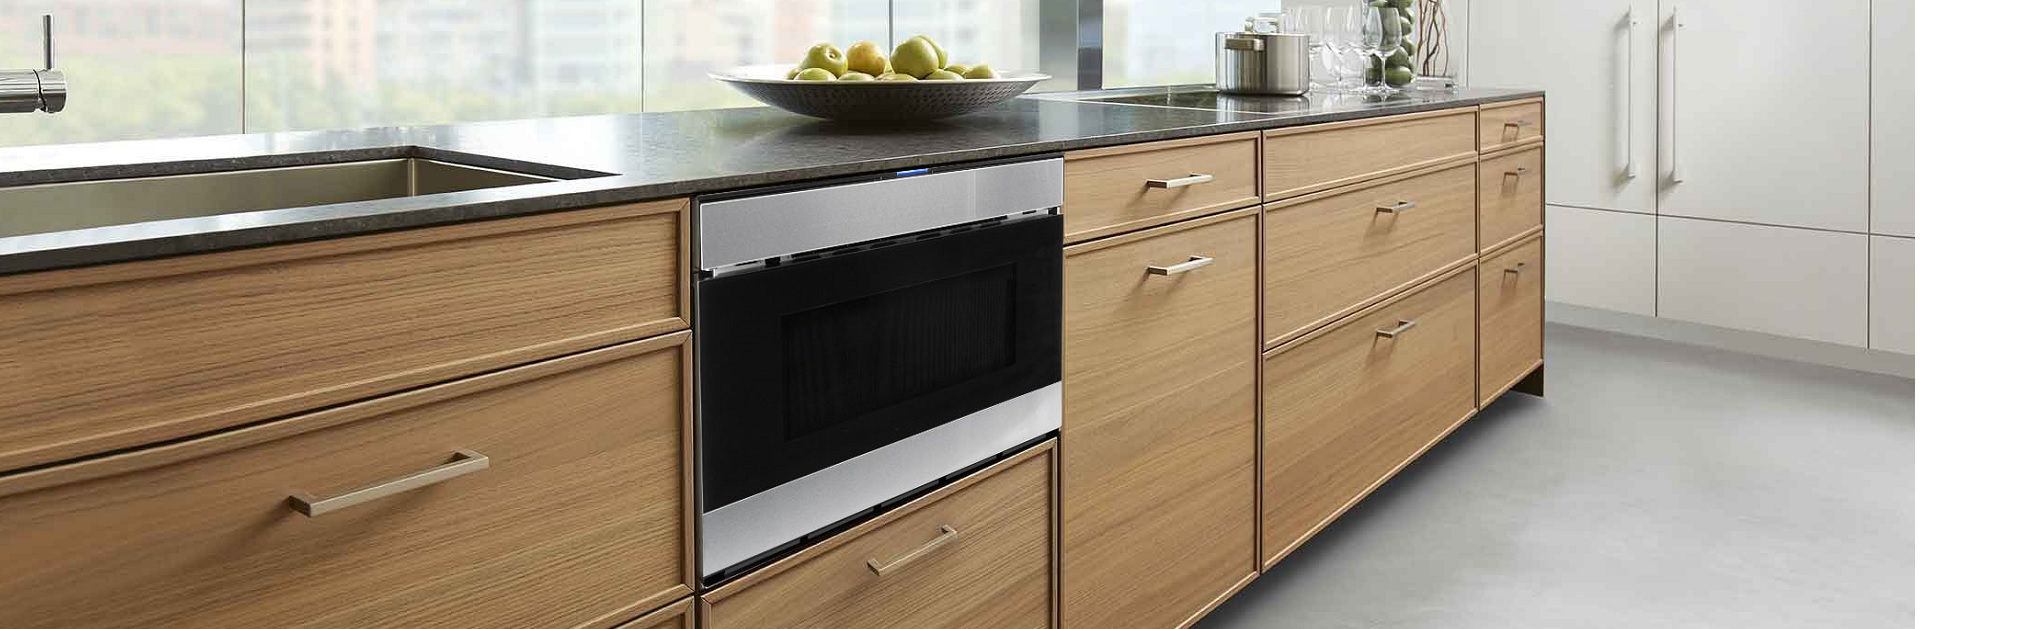 Microwave Drawer Image for Guide